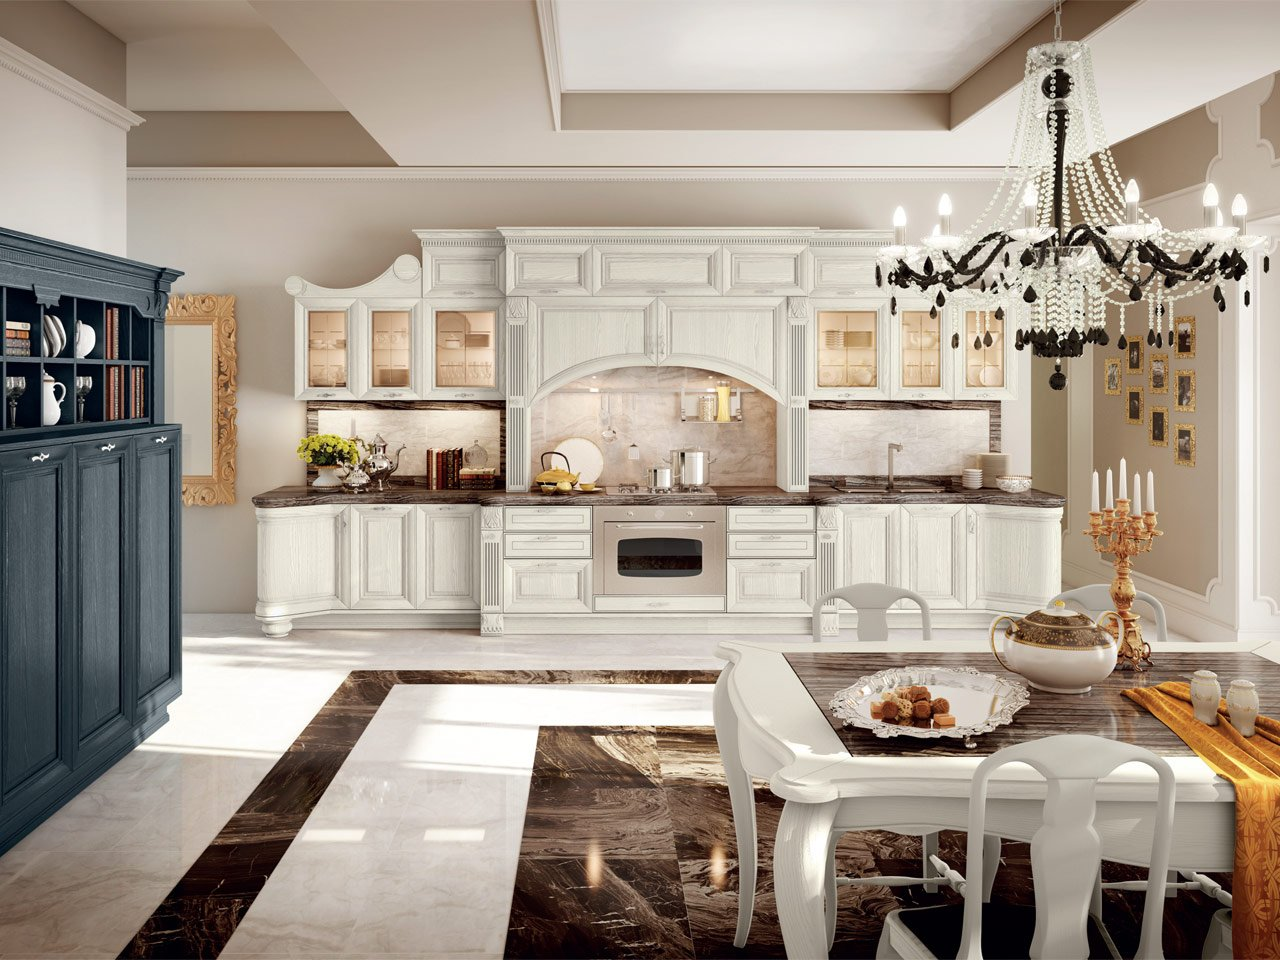 Pantheon lacquered kitchen by cucine lube - Cucina lube pantheon ...